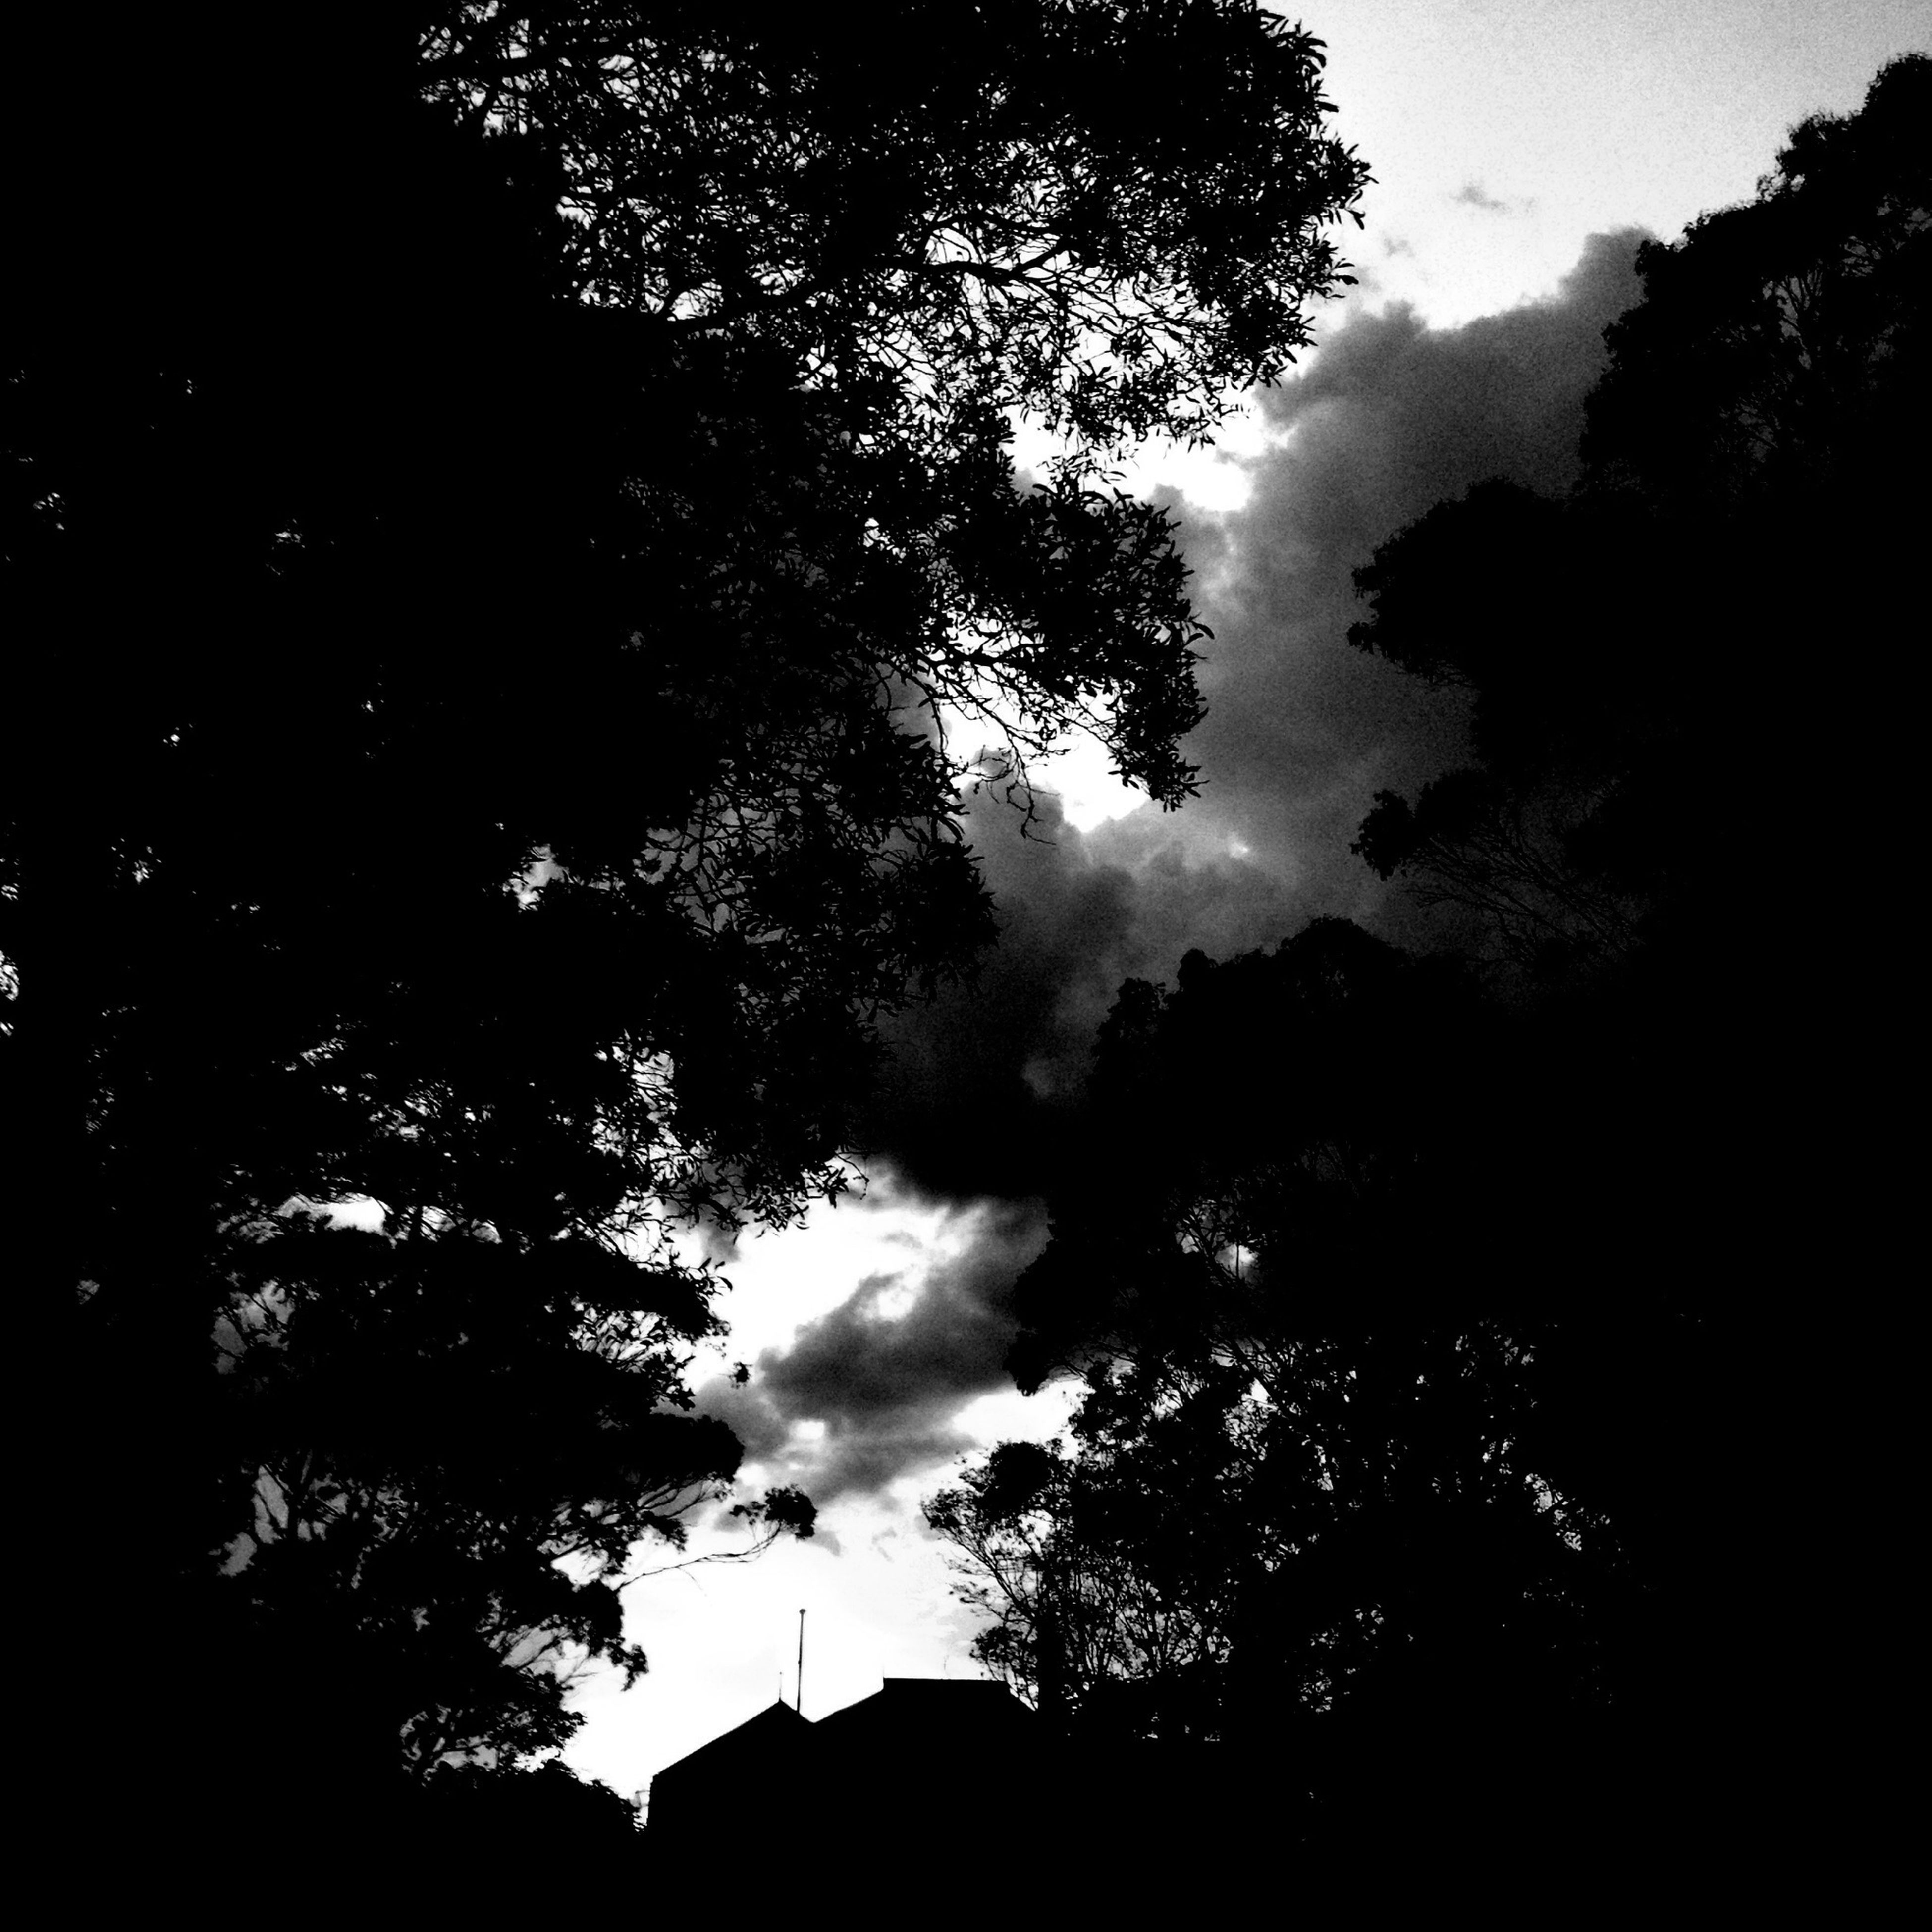 tree, silhouette, low angle view, sky, tranquility, beauty in nature, nature, cloud - sky, branch, scenics, tranquil scene, growth, dusk, outdoors, cloudy, no people, dark, outline, cloud, sunset